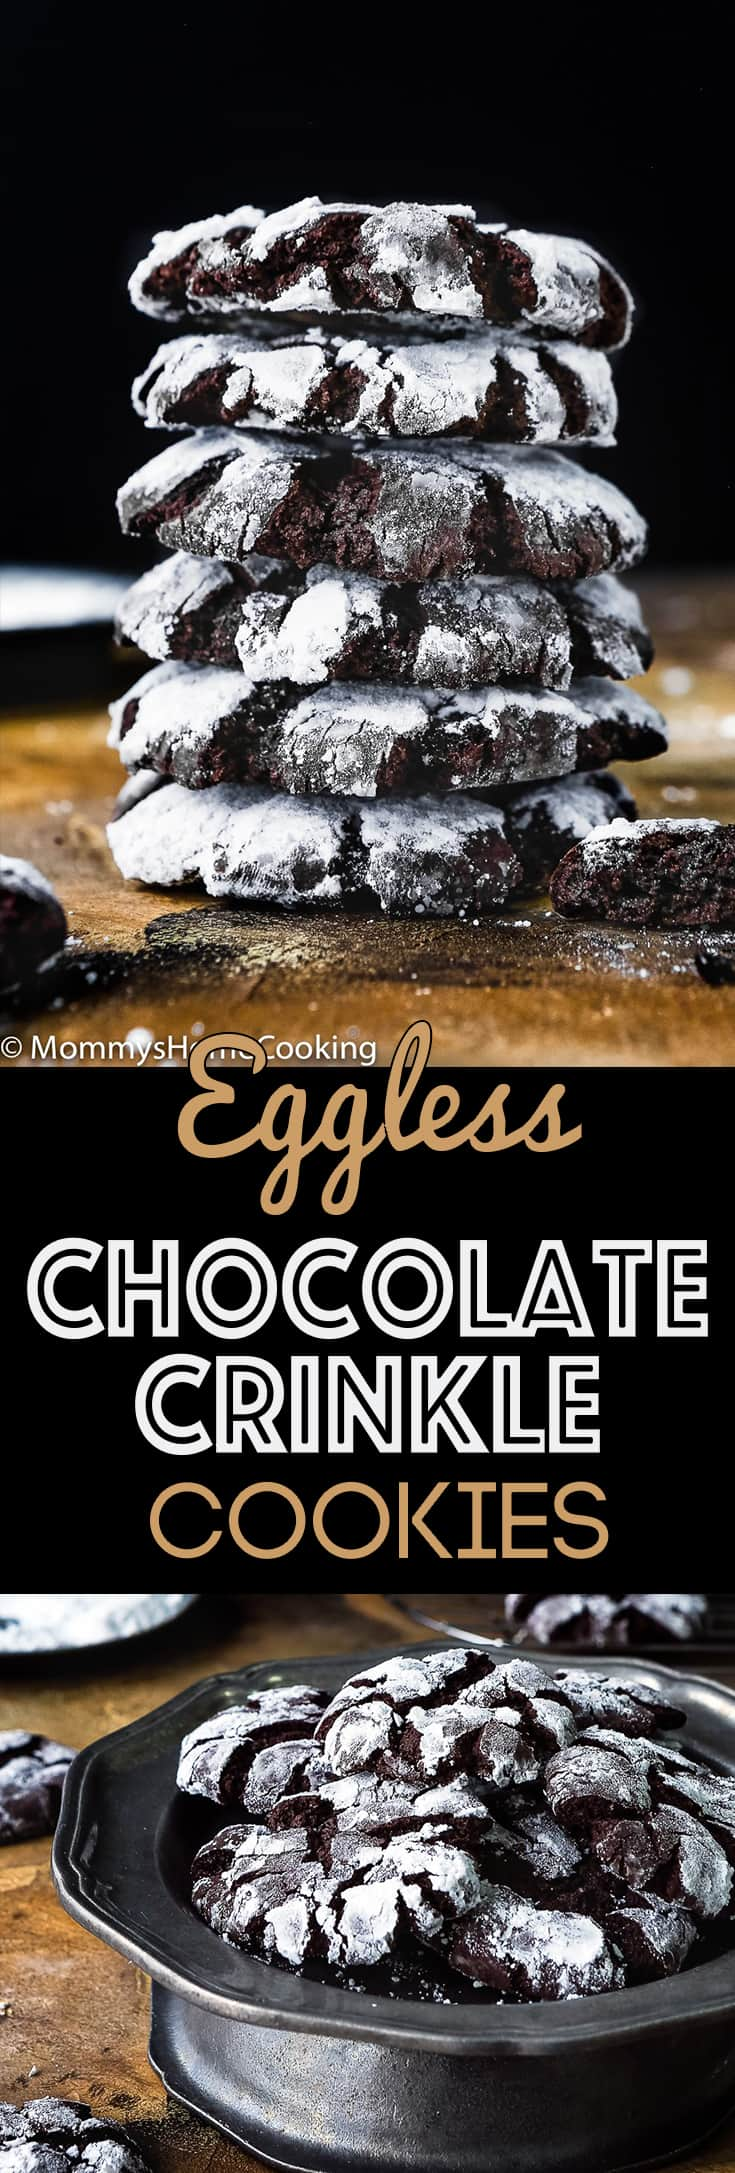 These Eggless Chocolate Crinkle Cookies are moist and fudgy on the inside, and slightly crisp on the outside. Nothing shouts out Happy Holidays like a great plate of chocolatey cookies. Easy to make, even easier to eat! http://mommyshomecooking.com